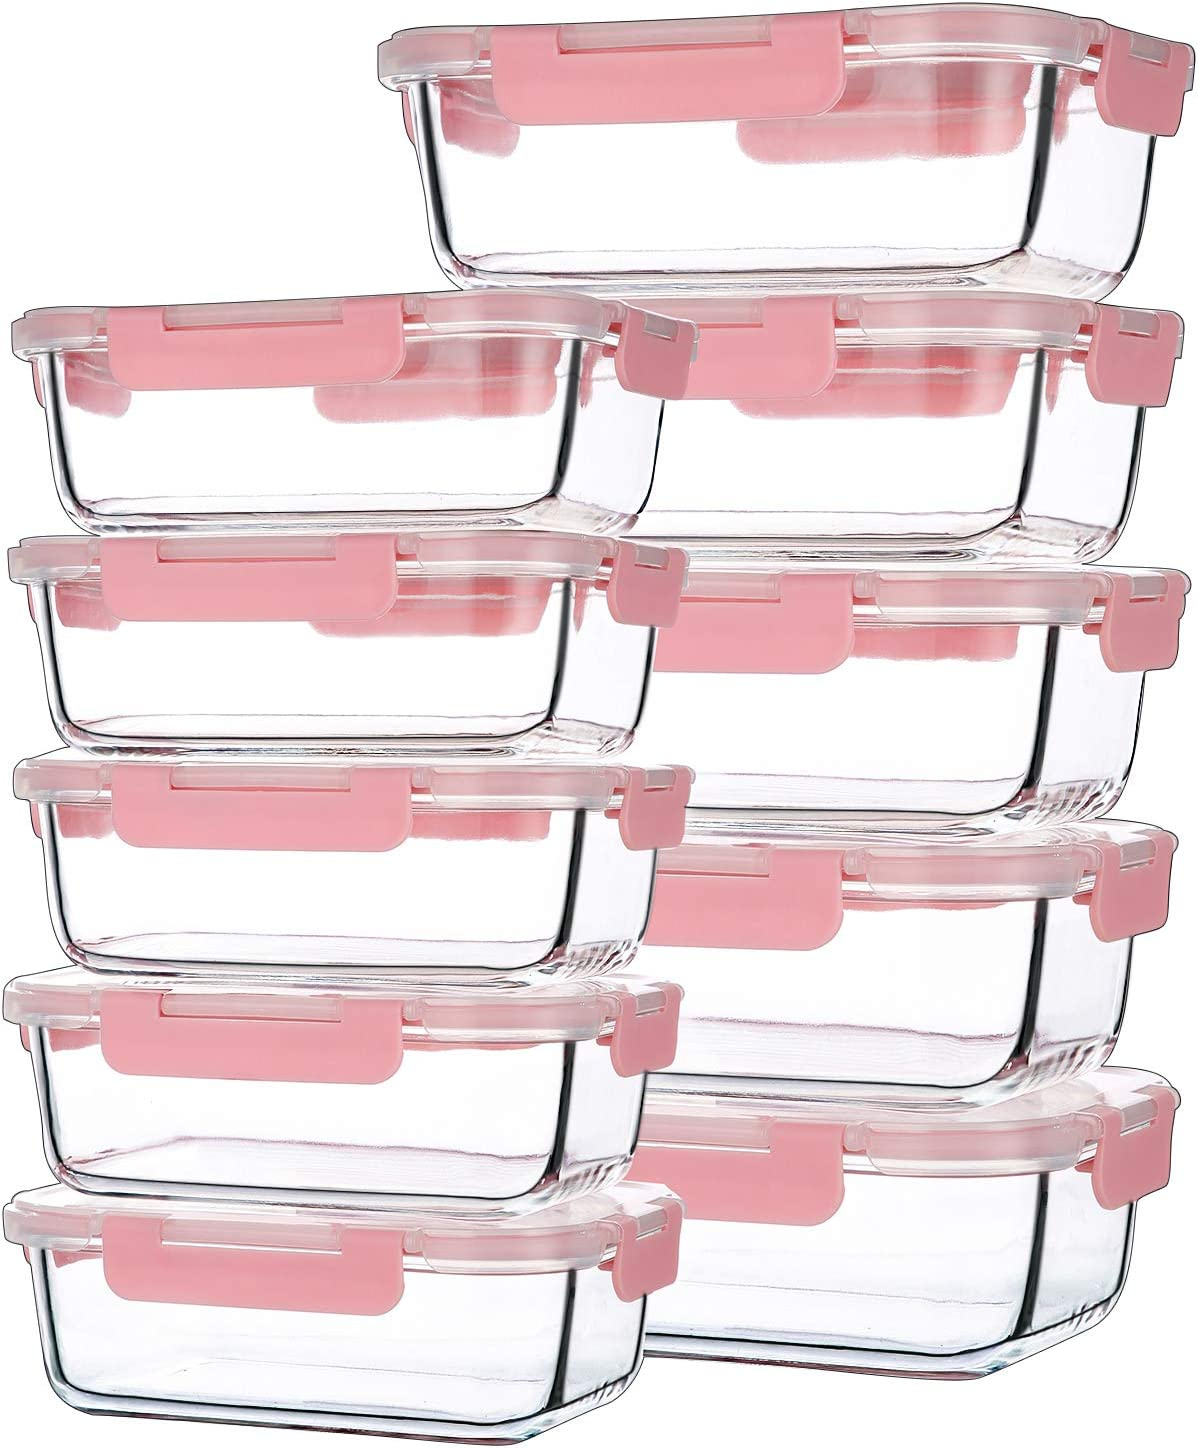 10Pack Two Size(12Oz,34Oz) Glass Food Containers with Airtight Lock Lids,Reusable Square Glass Meal Prep Food Containers